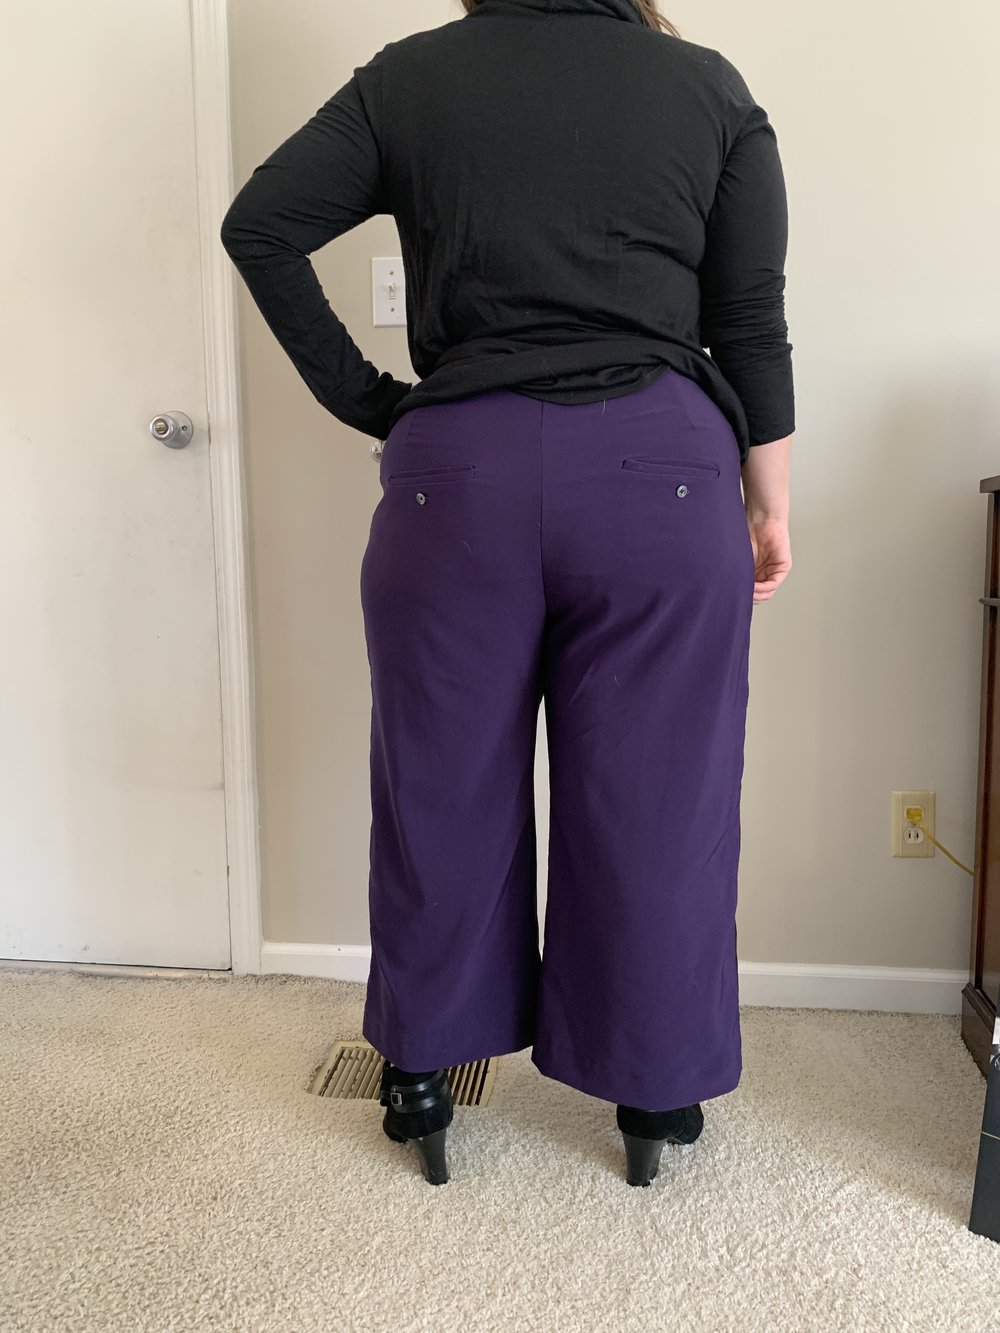 I learned so much about welt pockets making these pants!